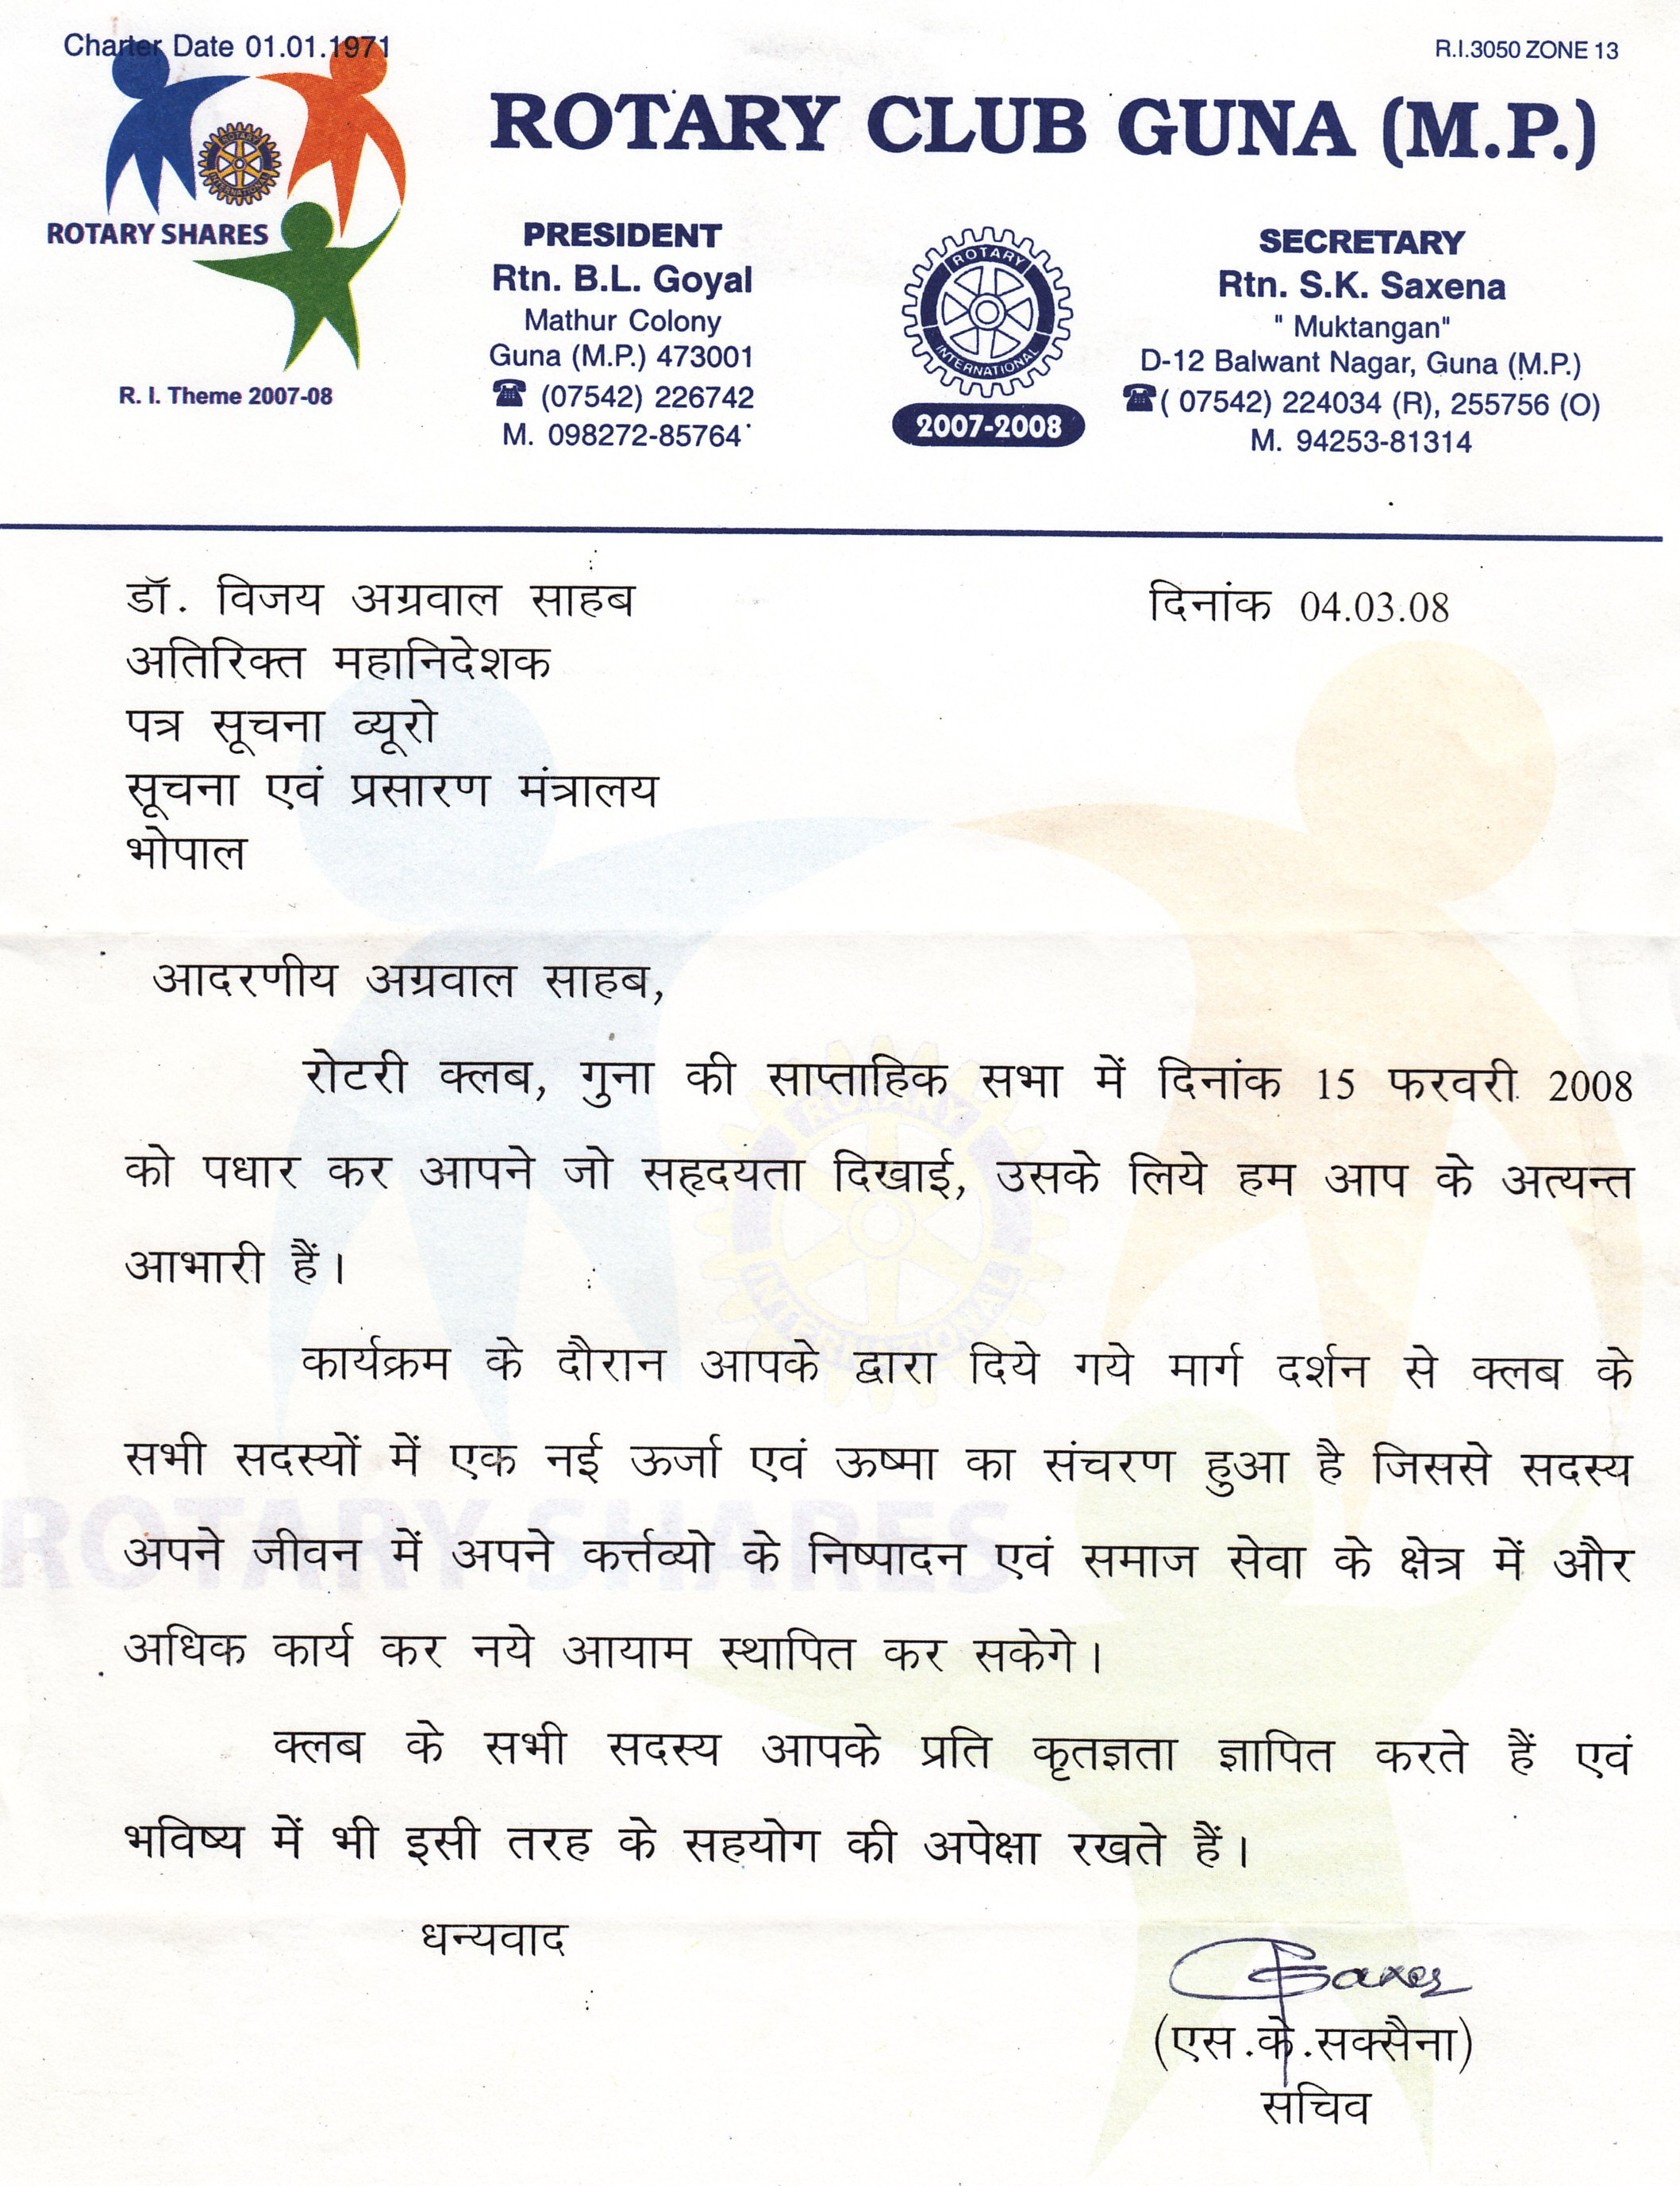 Letter from Rotary Club